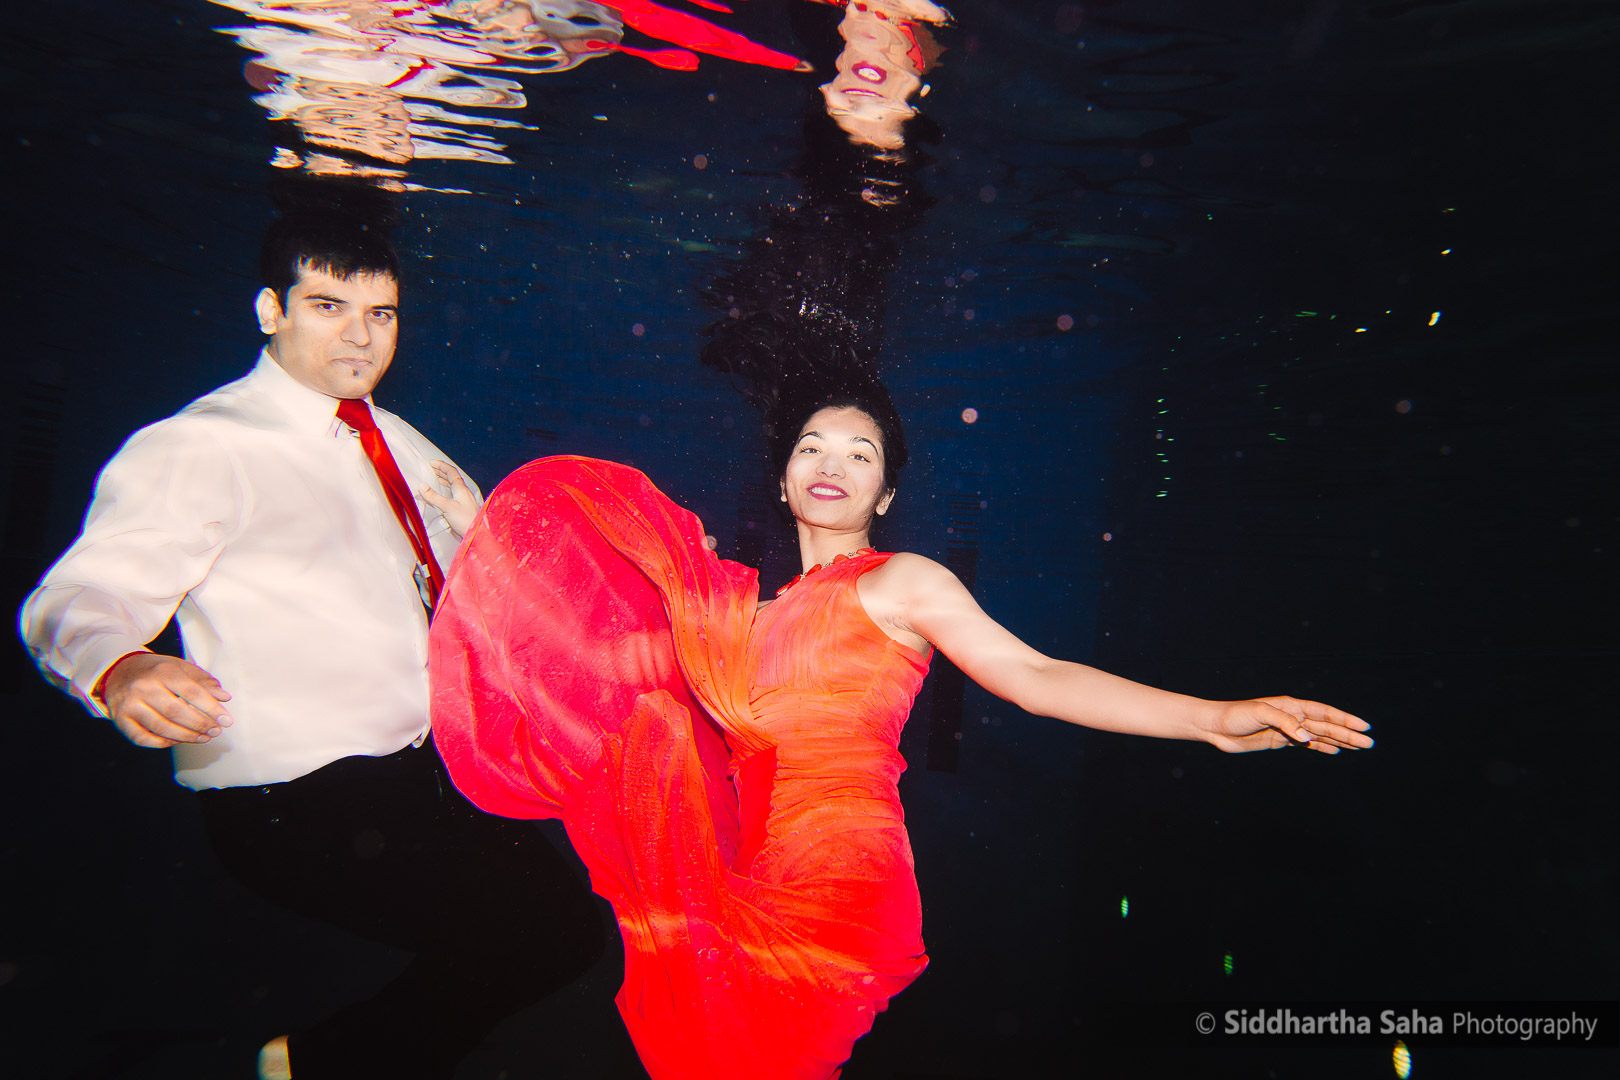 2015-04-12 - Saloni Vaibhav Underwater Shoot - _O5C4280-01